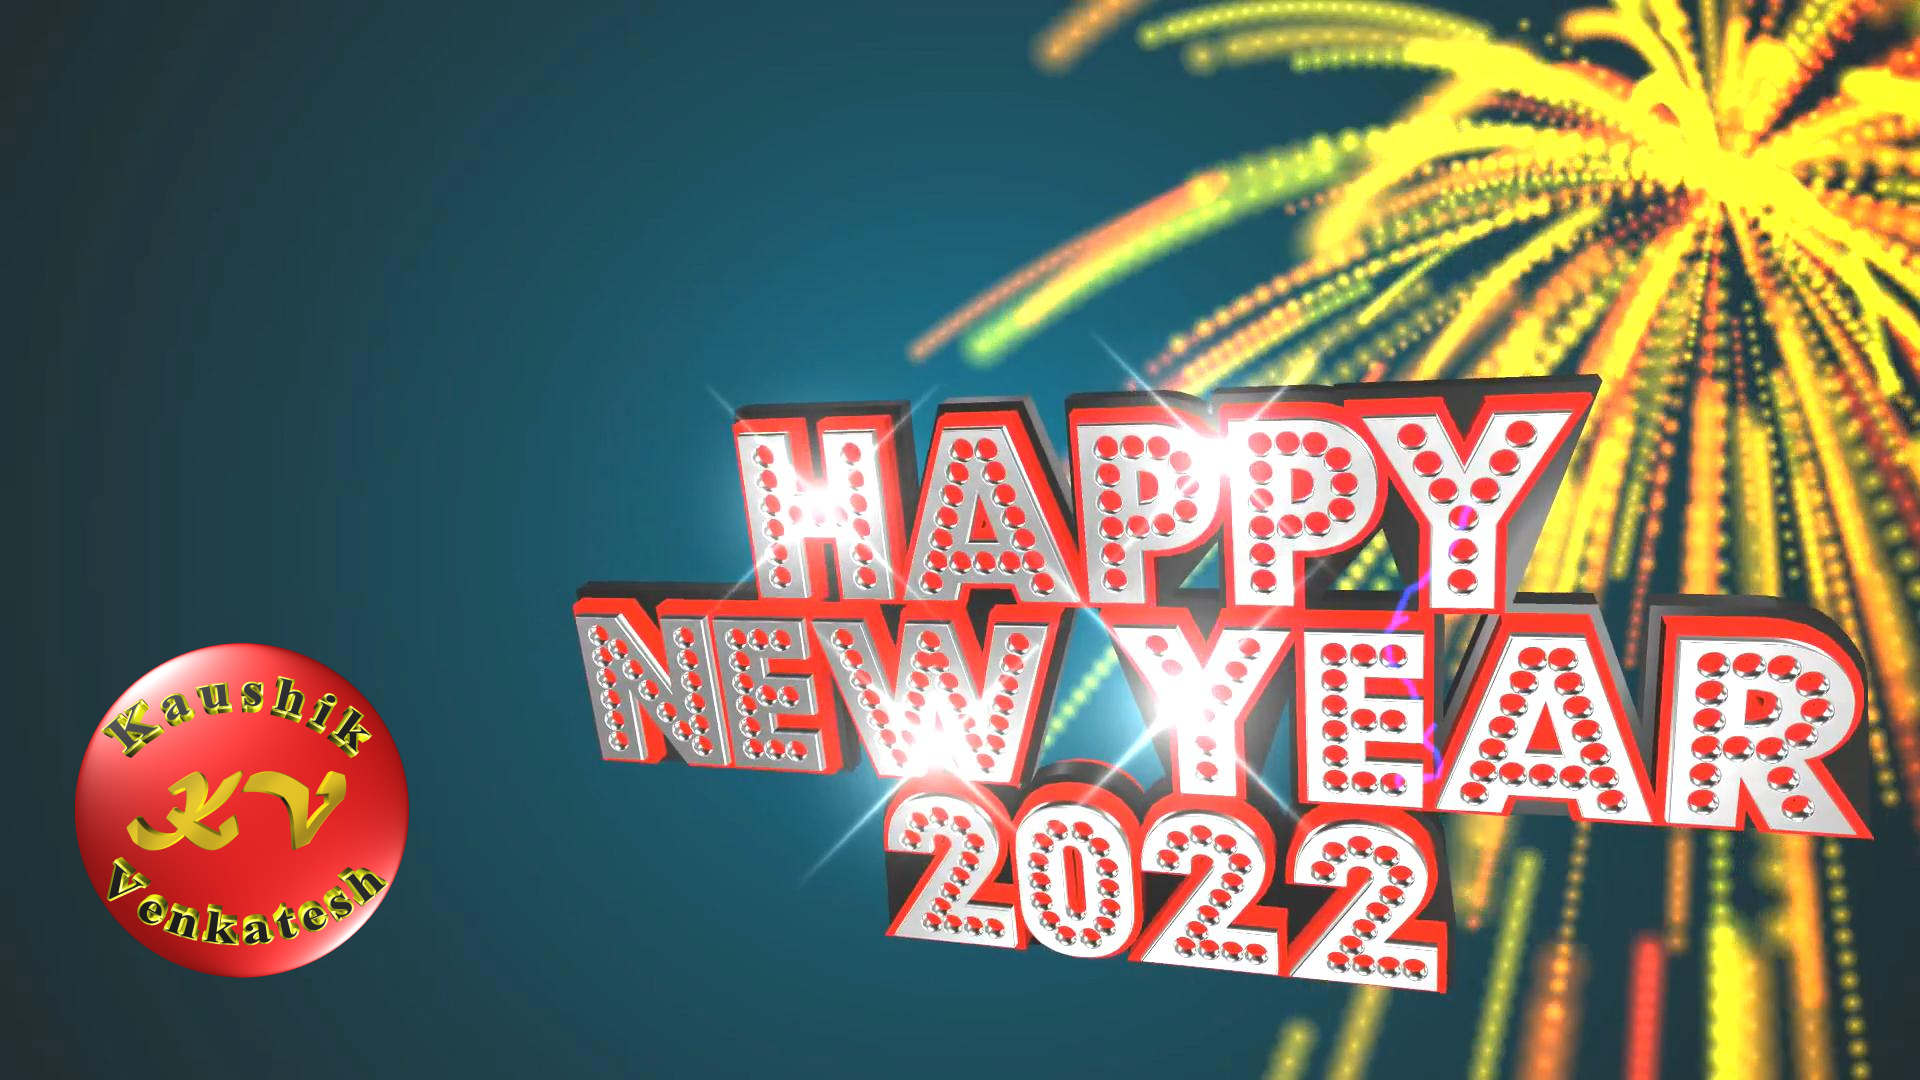 Countdown Video for New Year 2022